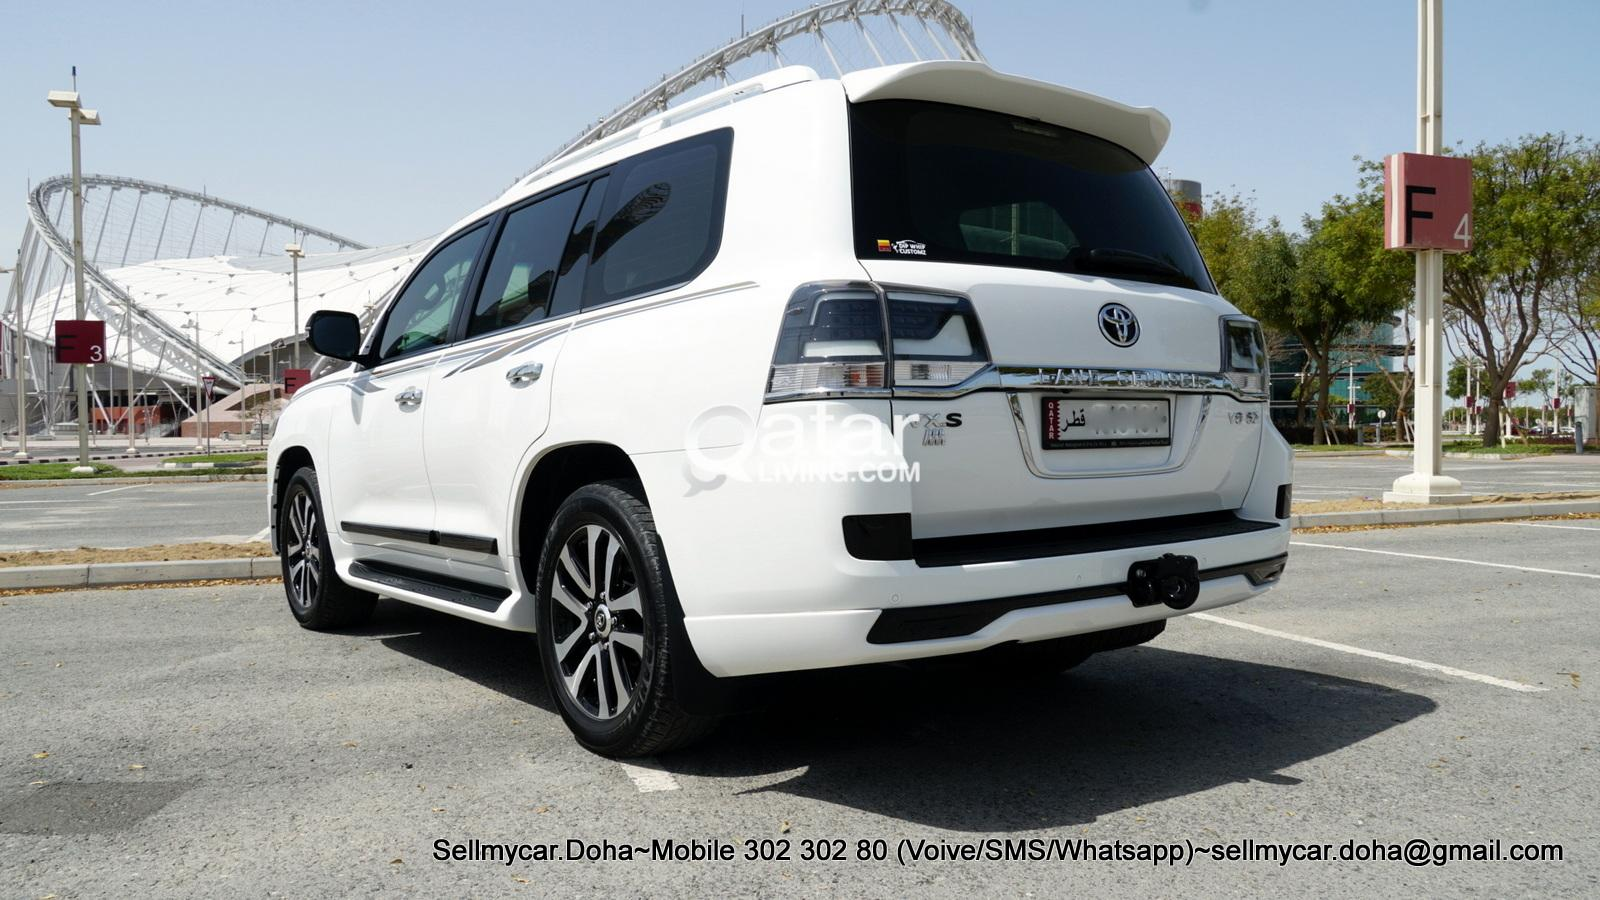 2017 Toyota Land Cruiser VXS (Many More Photos Available)